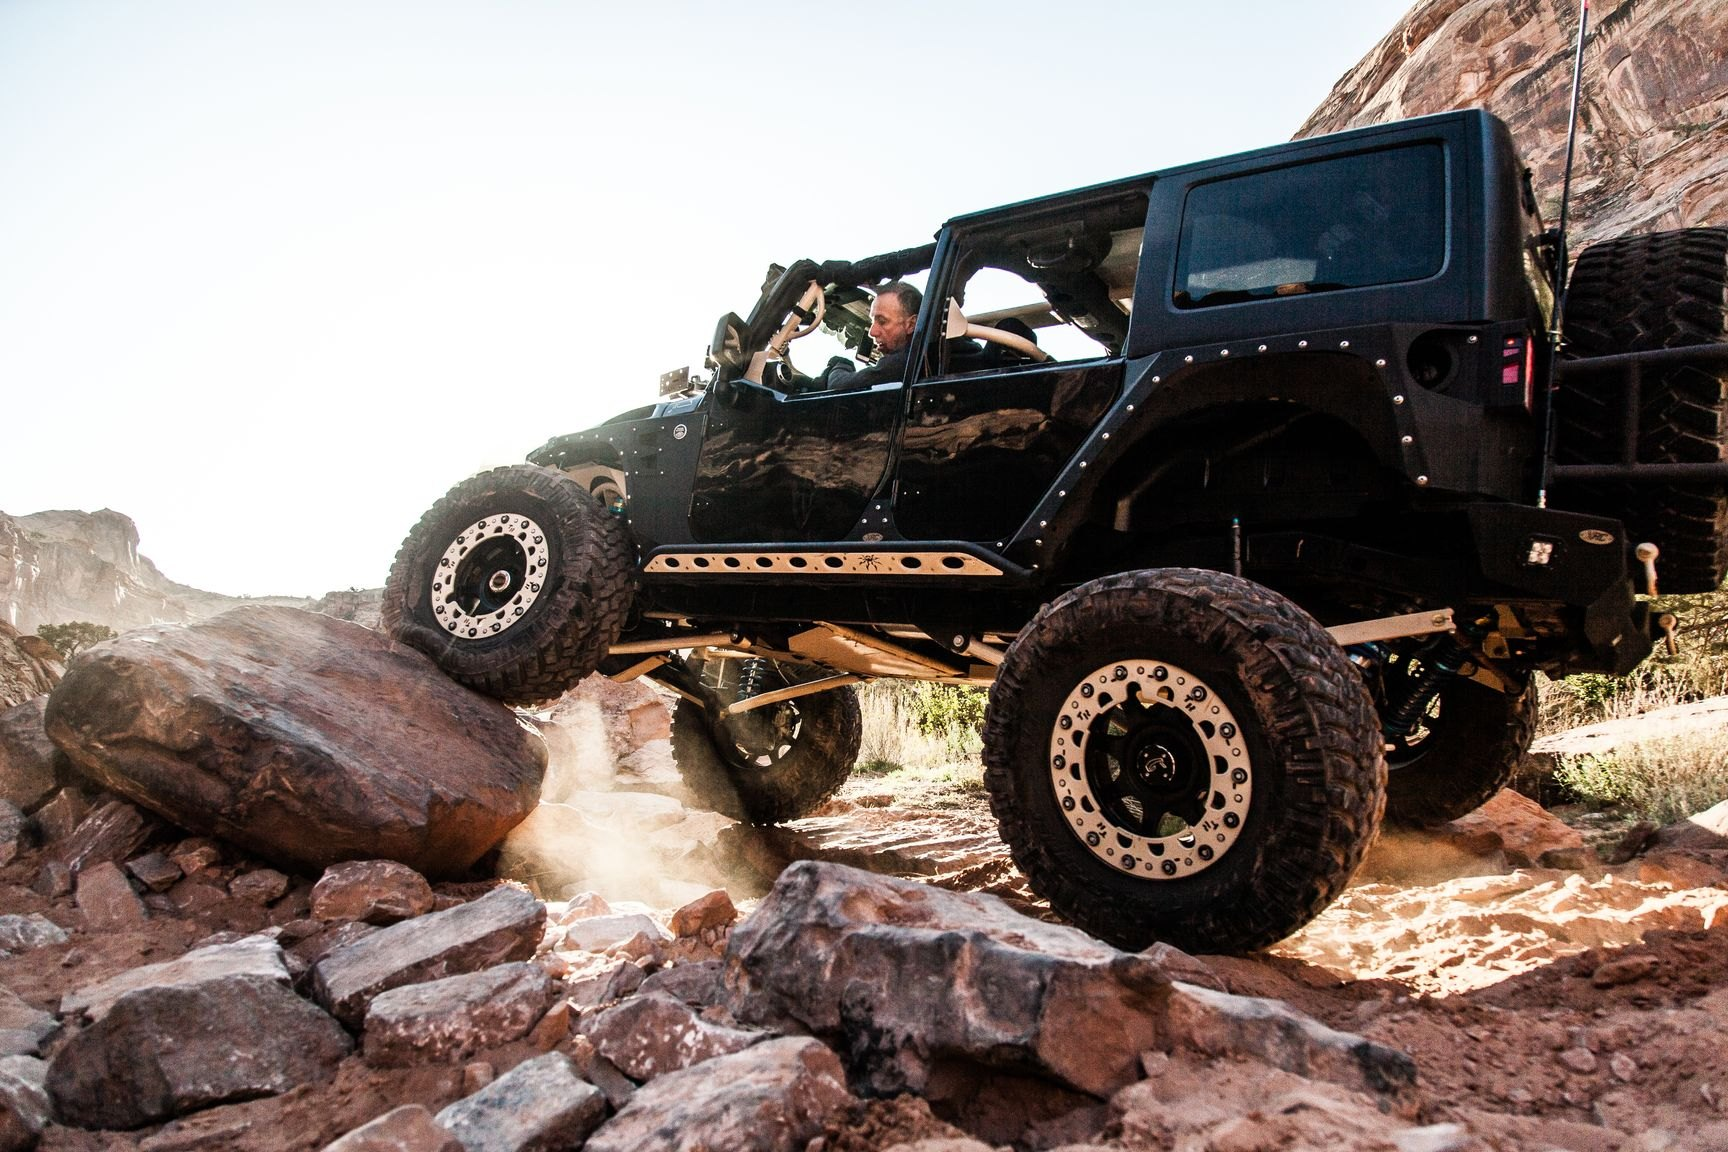 Smittybilt Off-Road Rear Bumper on Black Jeep Wrangler - Photo by Rebel Off-Road